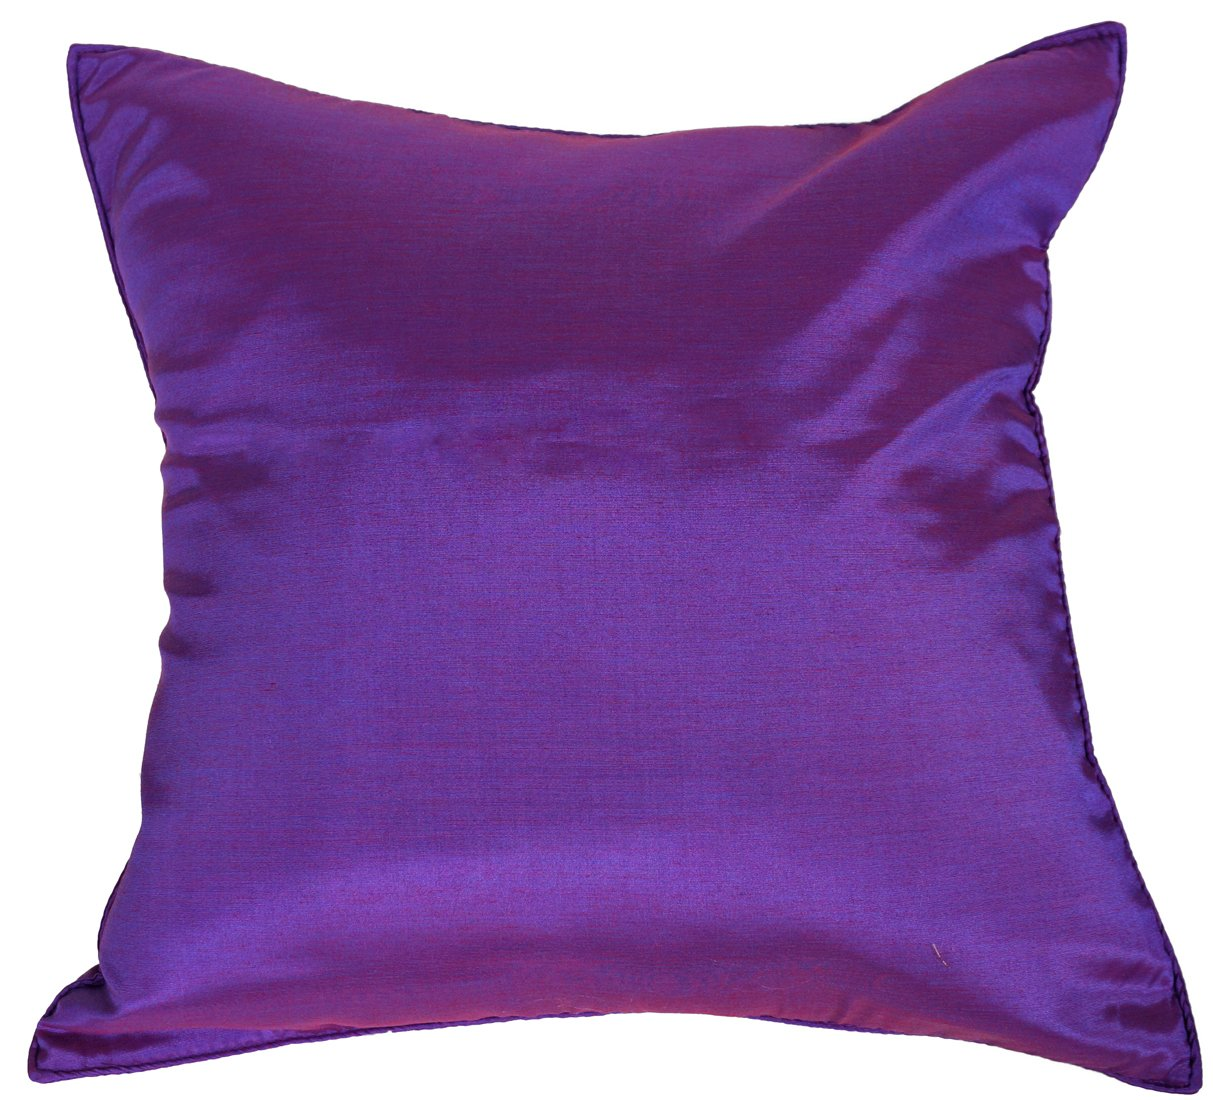 Decorative Pillow Cases : Purple Silk Throw Decorative Pillow Cases for Sofa Couch 16x16